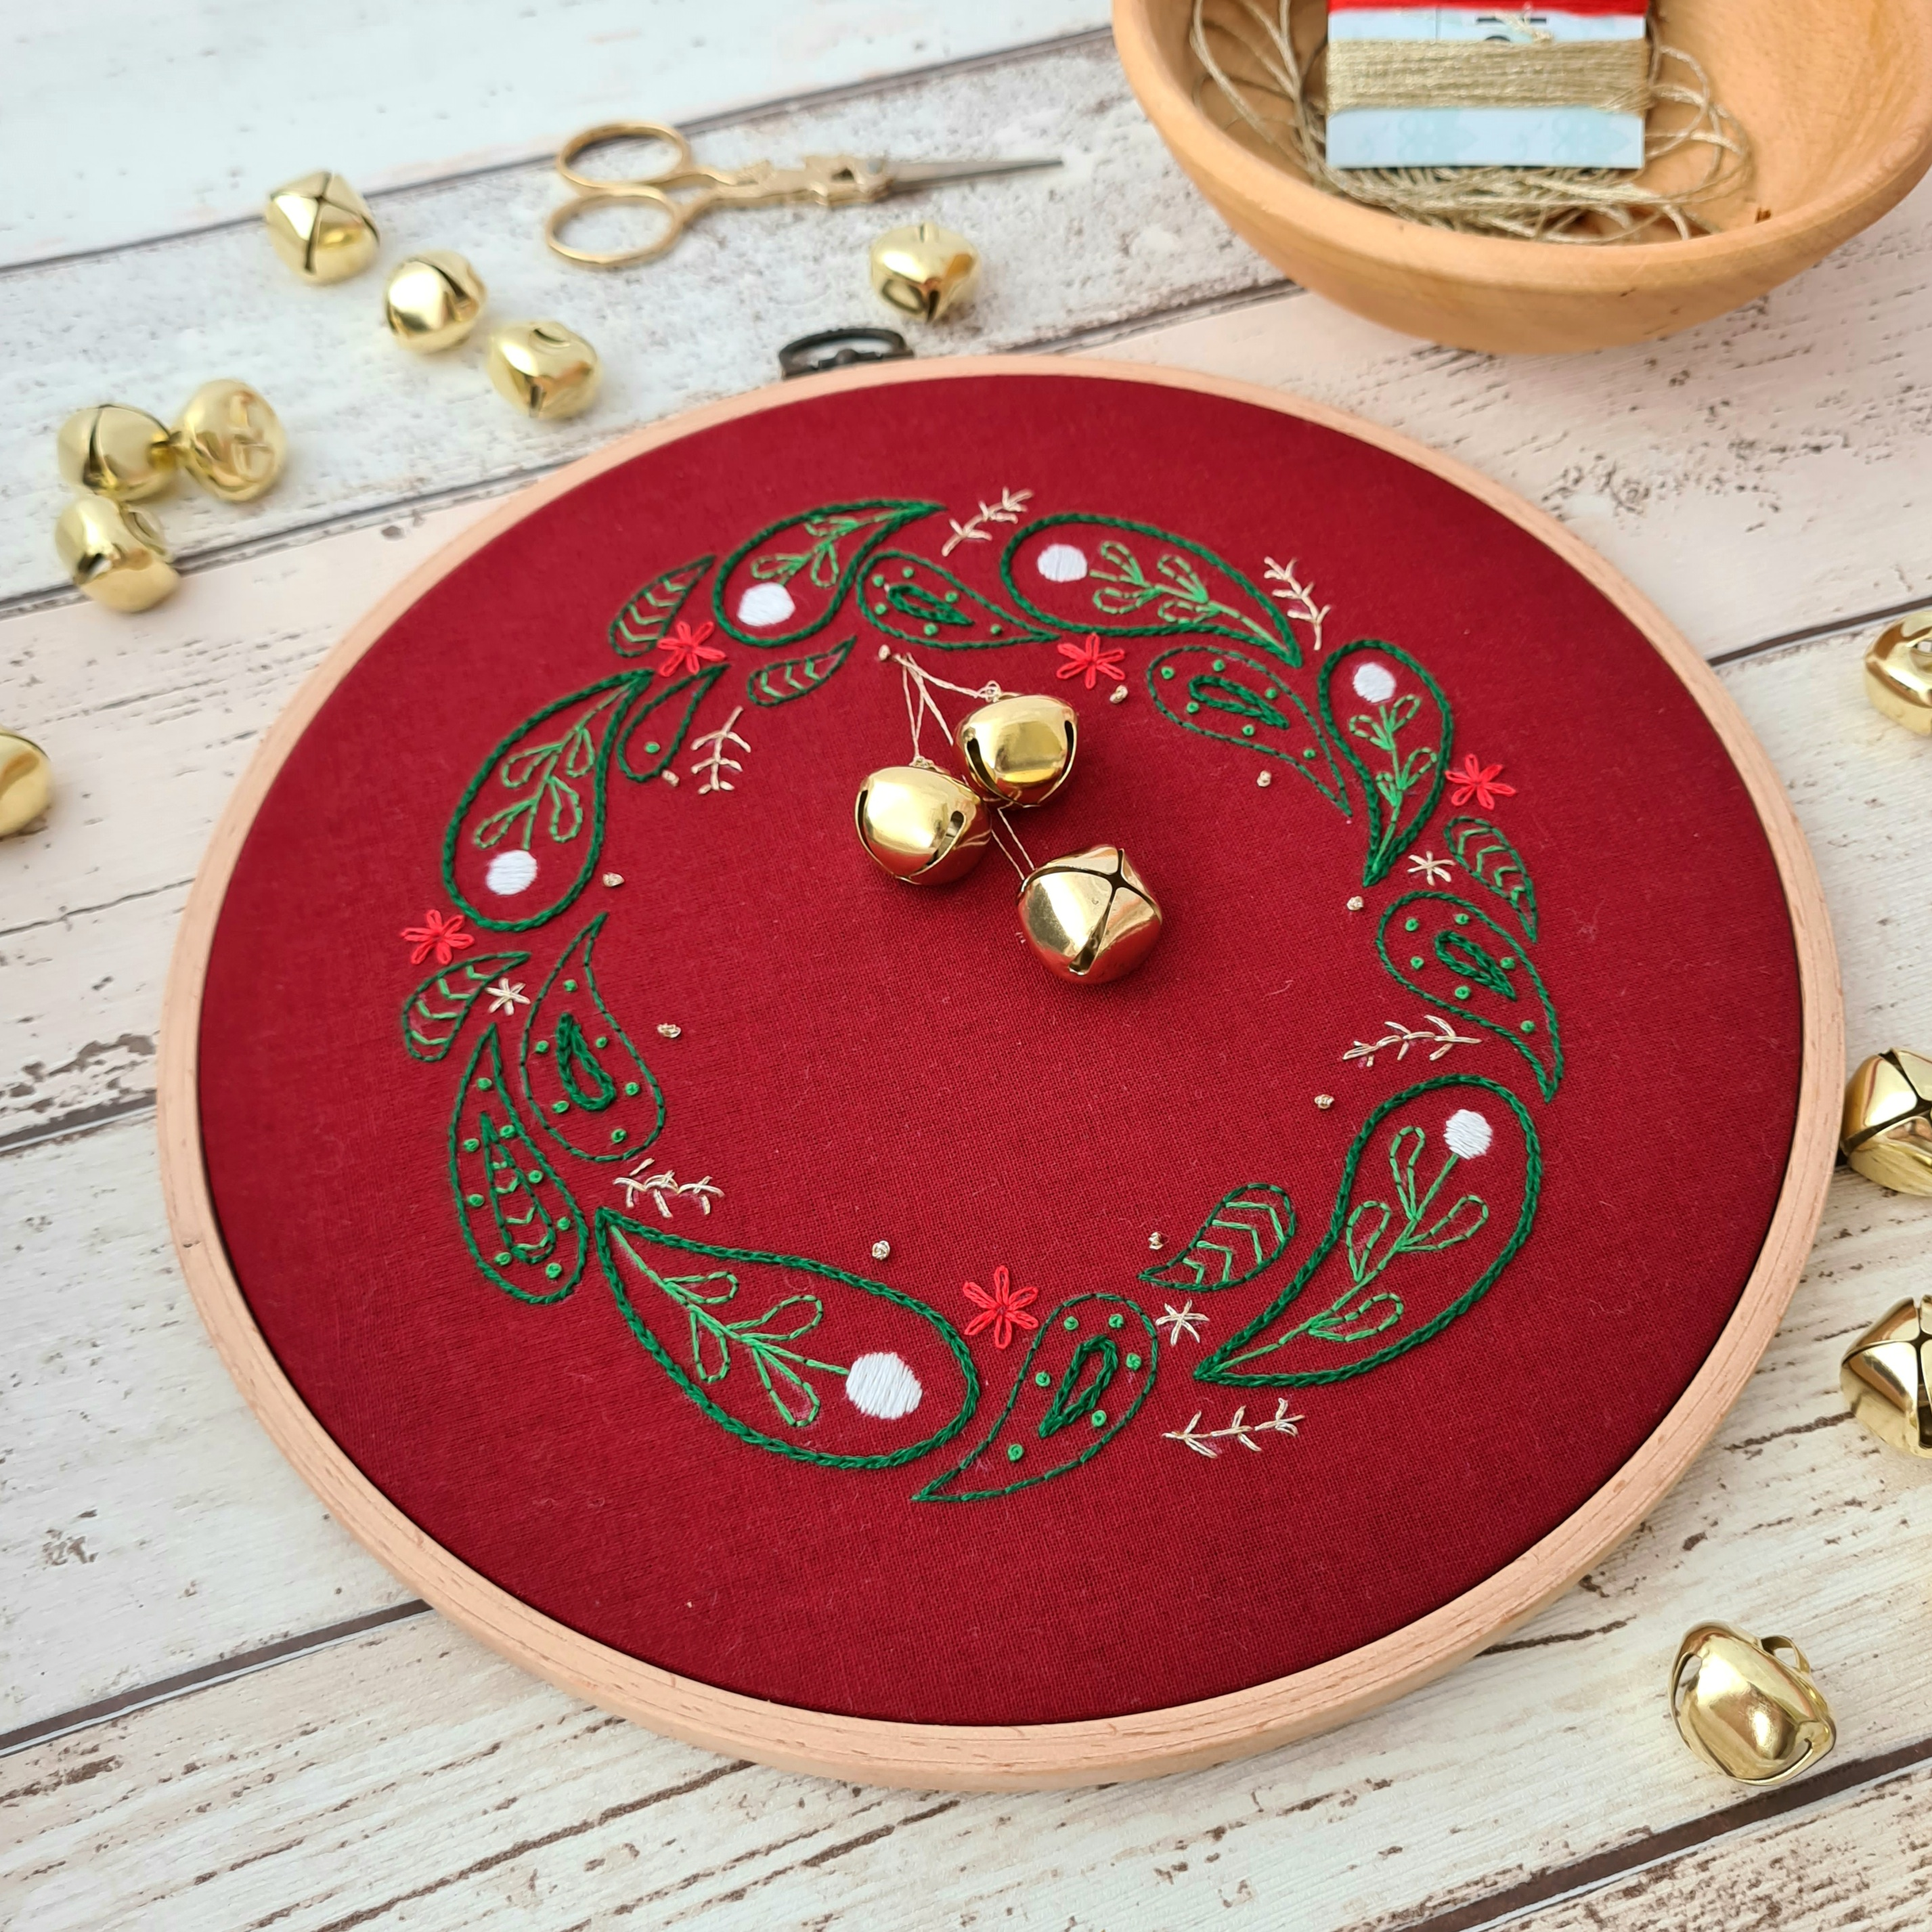 Embroidery Workshop: Festive Wreath